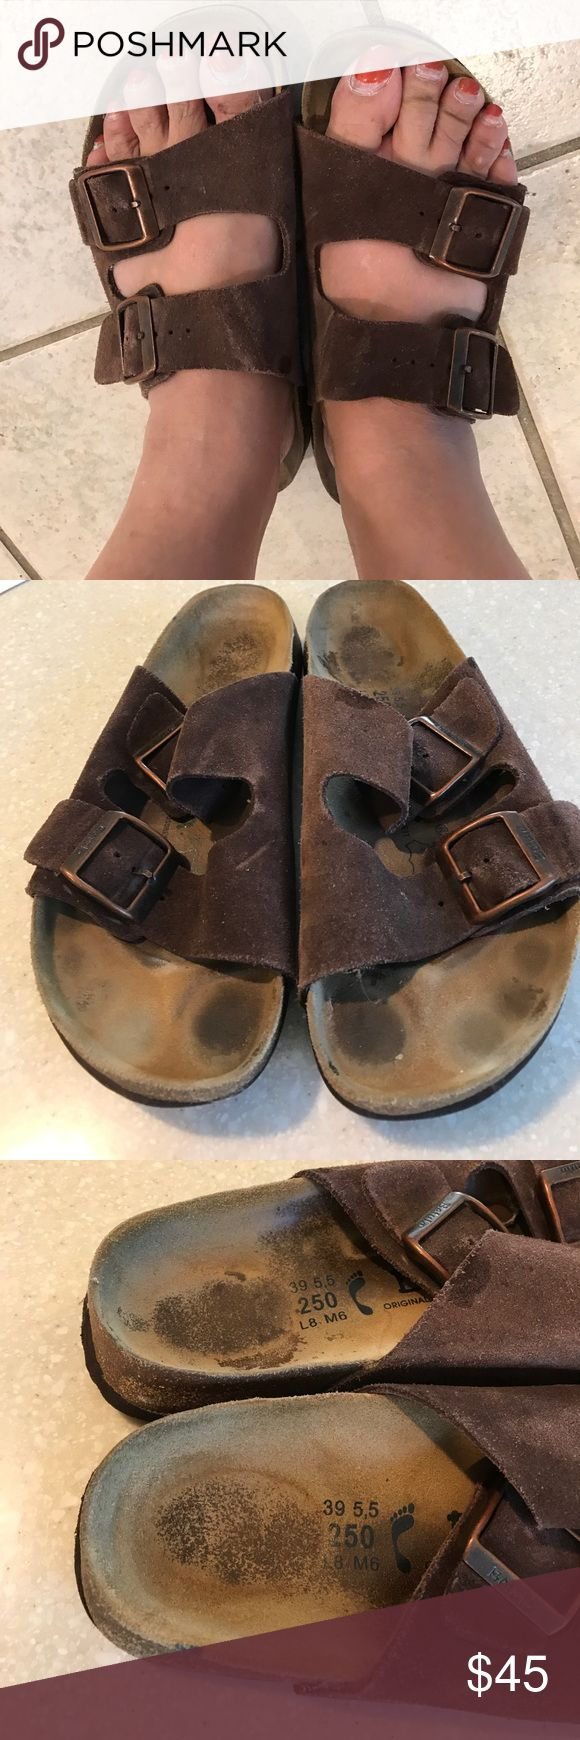 Birkenstock/Betula sandals size 39 Great quality sandals that has some used with darkening in the footbed noticed,and bottom with some worn but overall still look good with lots of life left. Birkenstock Shoes Sandals